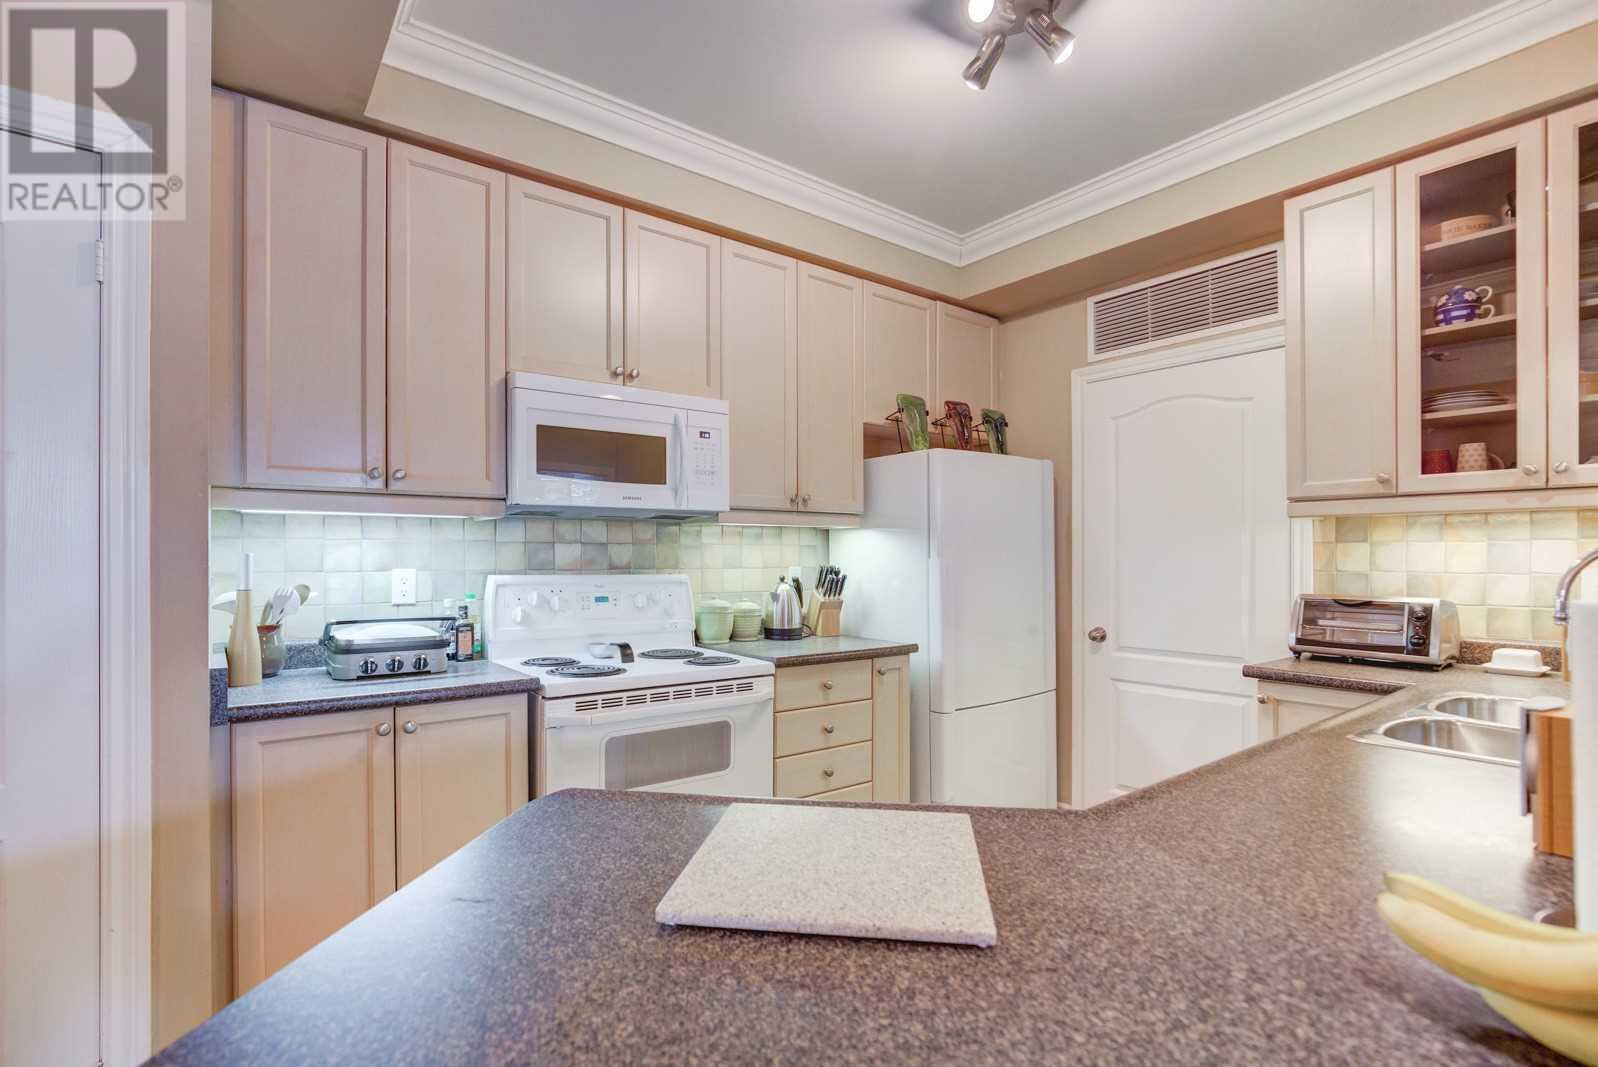 #119 -3351 Cawthra Rd, Mississauga, Ontario  L5A 4N5 - Photo 8 - W4673329